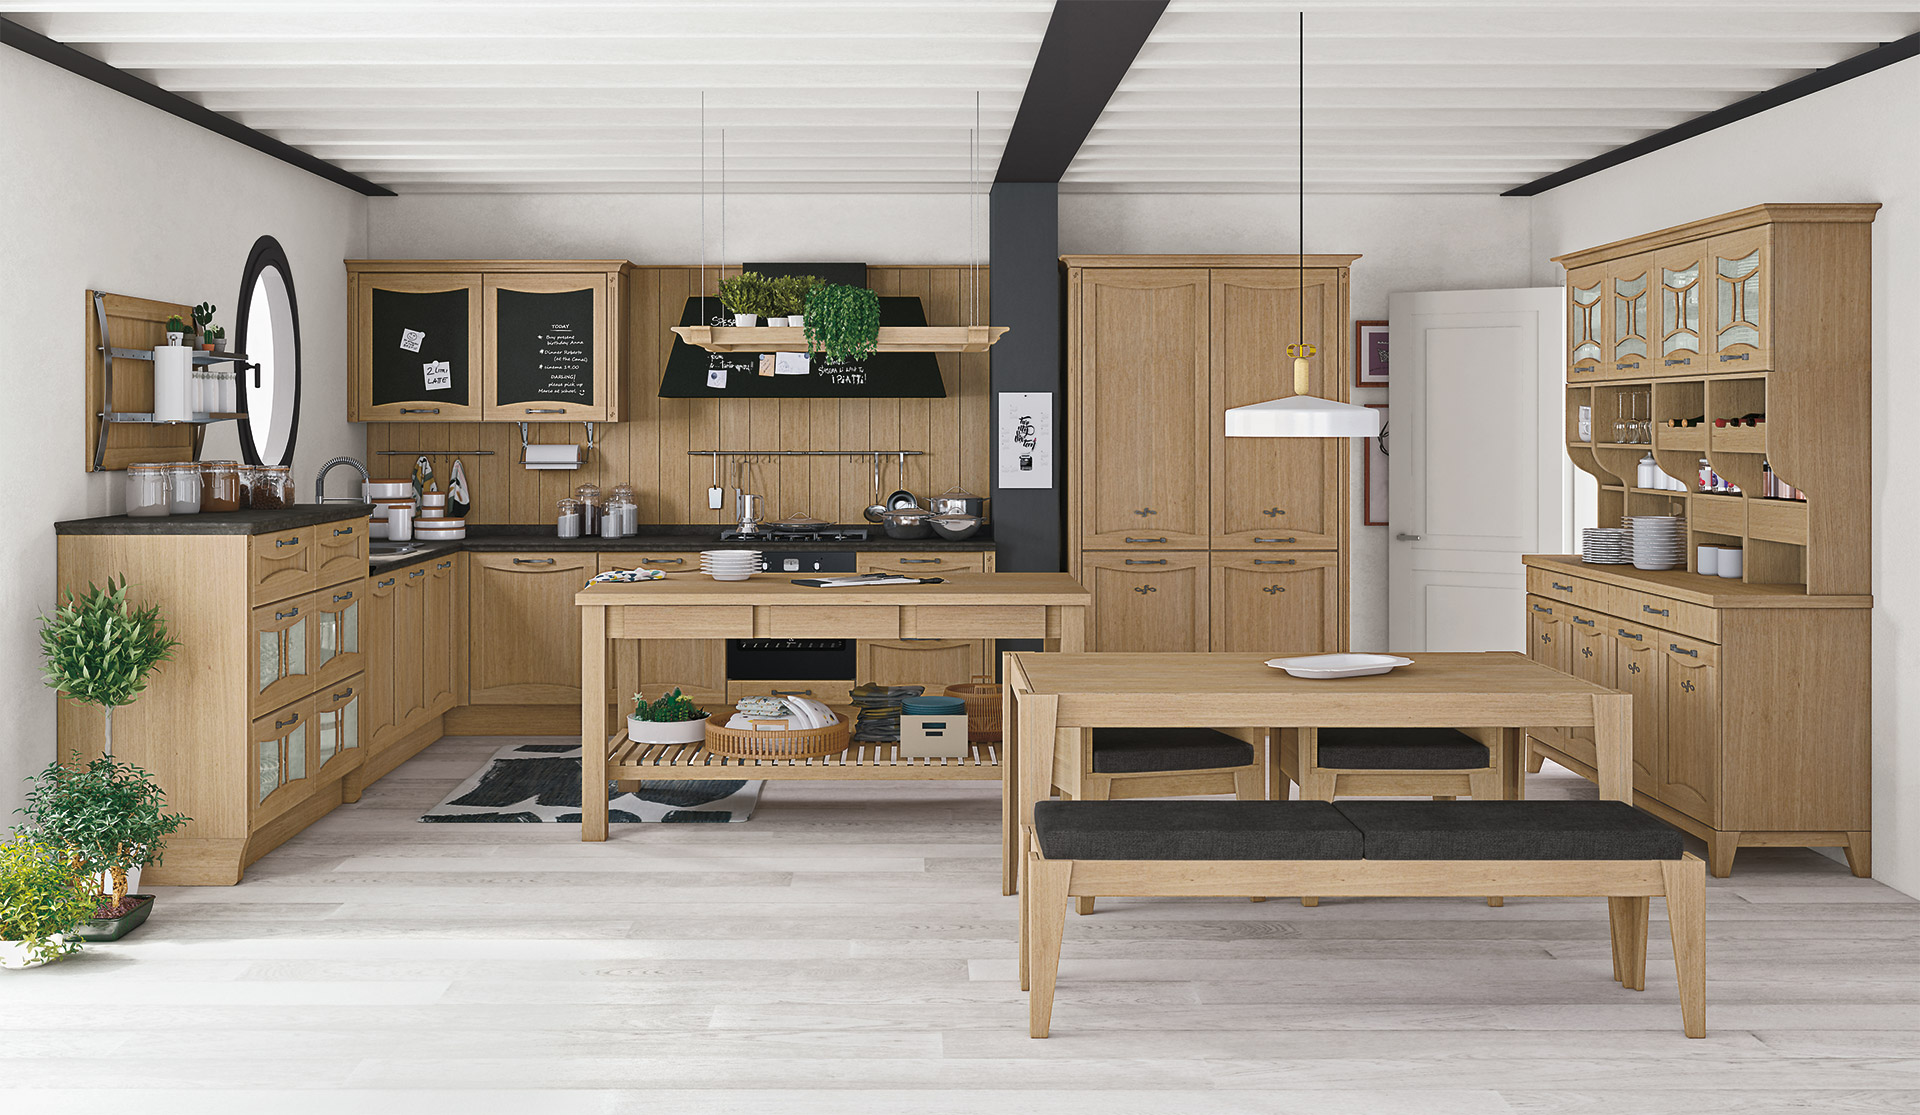 Cucina country lube aurea creo kitchens for Tavolo cucina kyra